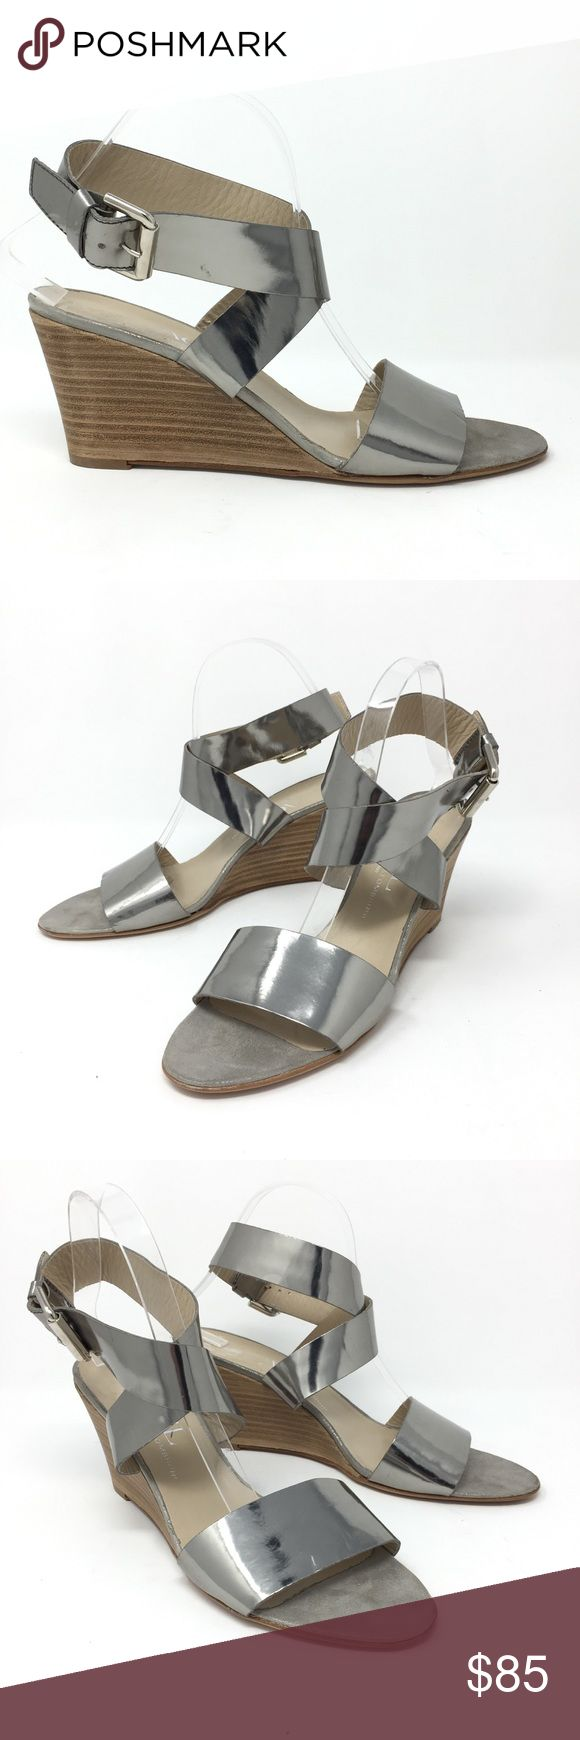 AGL Silver Ankle Wrap Wedge Sandals Sz 41 US 11 AGL Attilio Giusti Leombruni Silver Ankle Wrap Wedge Sandal women's Sz41 US 11  Size: 41 US 11 Color: Silver  In excellent preowned condition with no known flaws and light overall wear. Agl Shoes Wedges